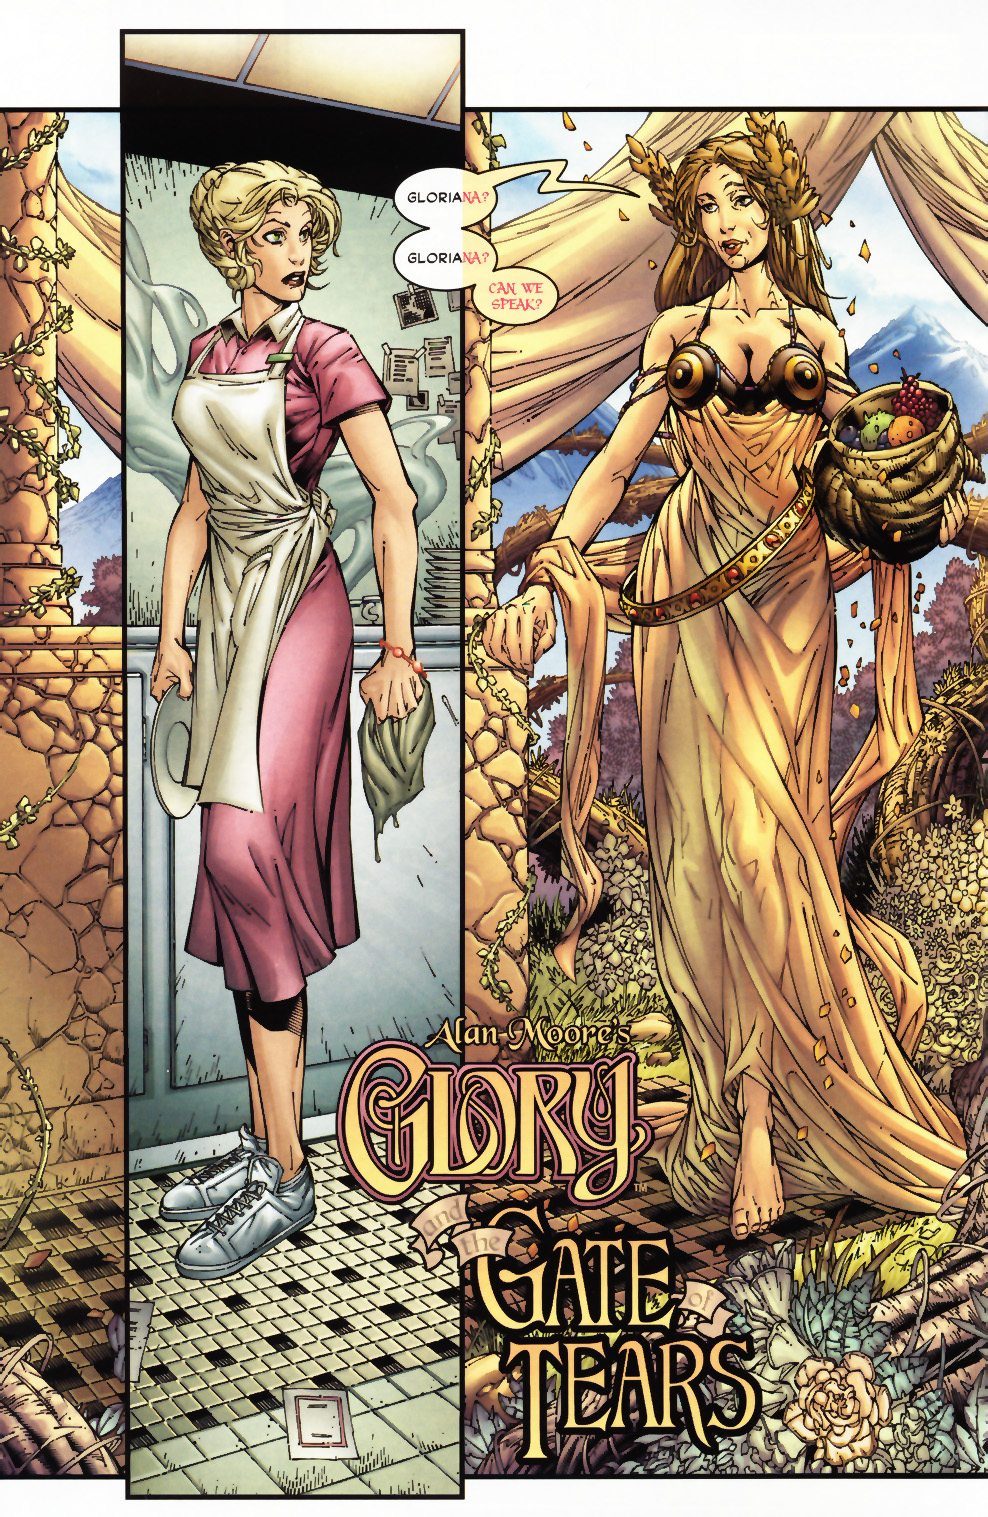 Read online Alan Moore's Glory comic -  Issue #0 - 3